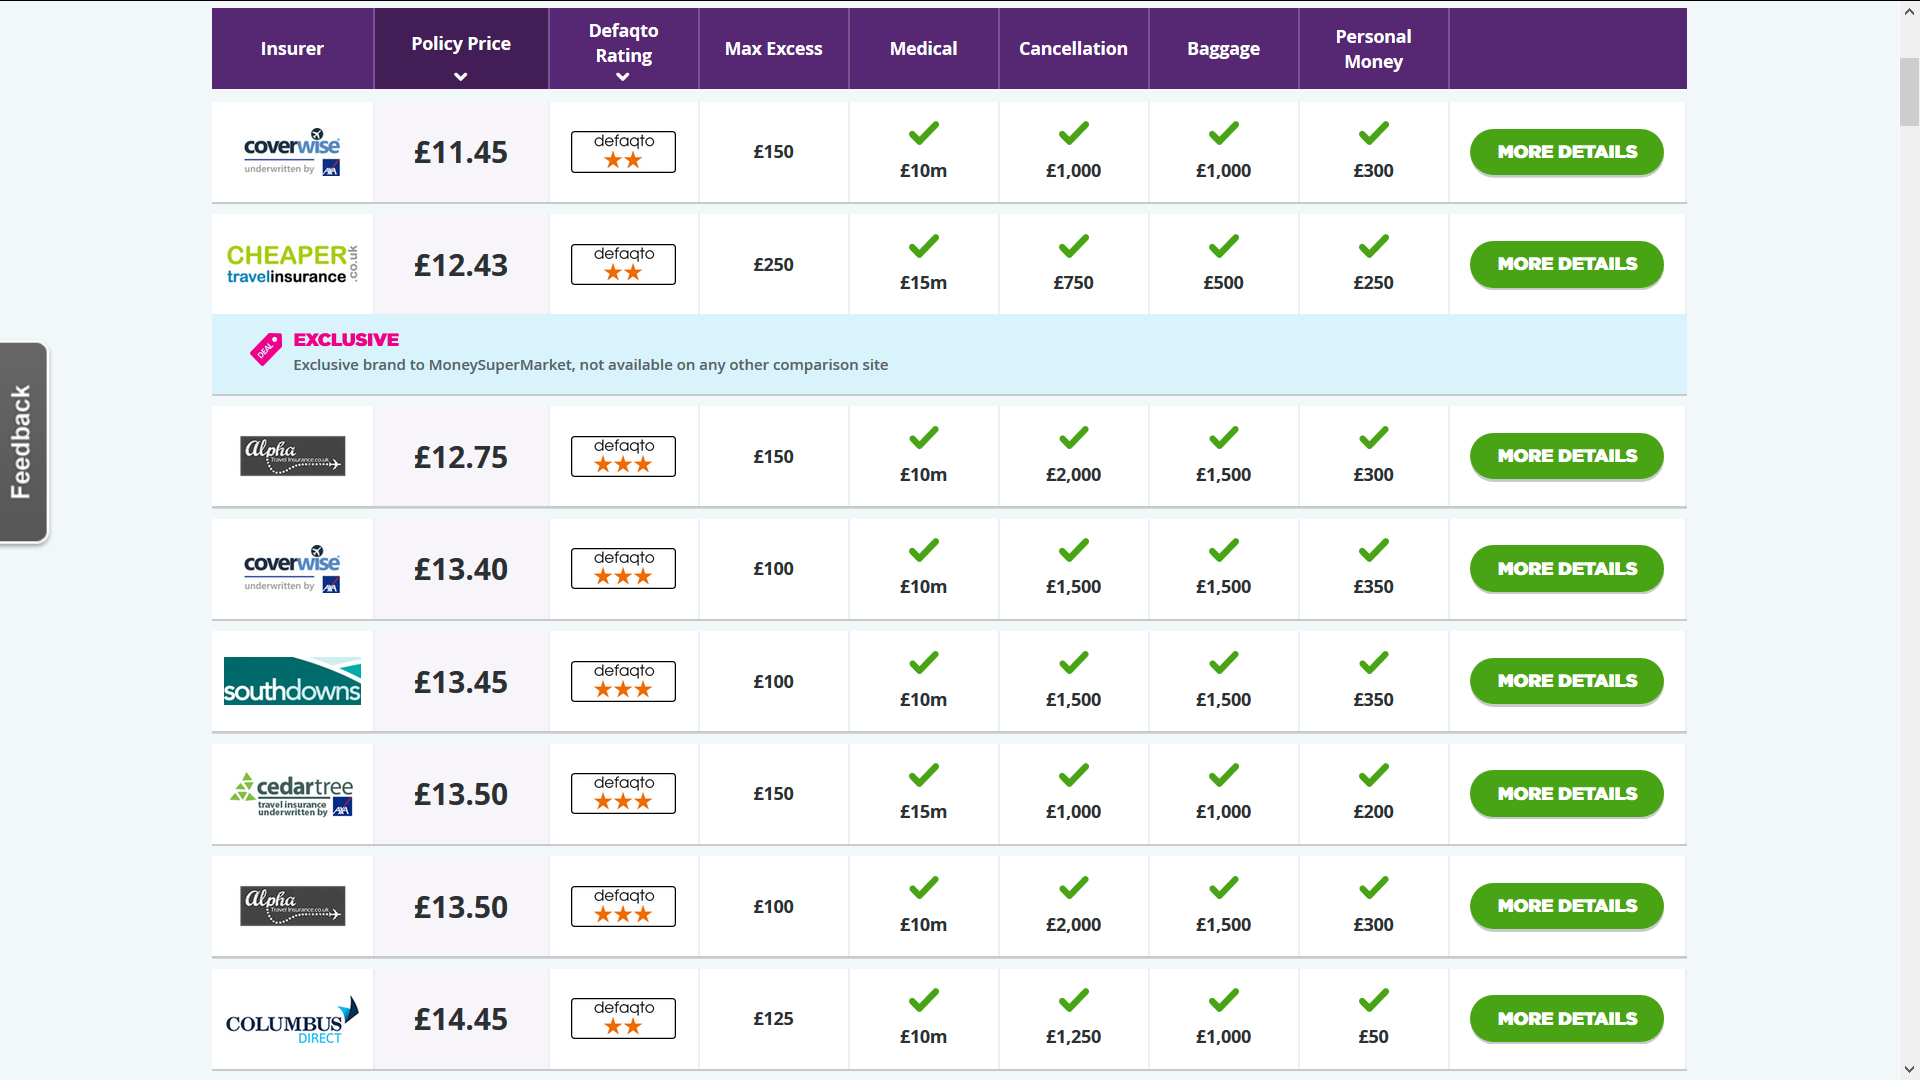 Image-14-pocruises-travel-insurance-comparison-table | AardvarkCompare.com